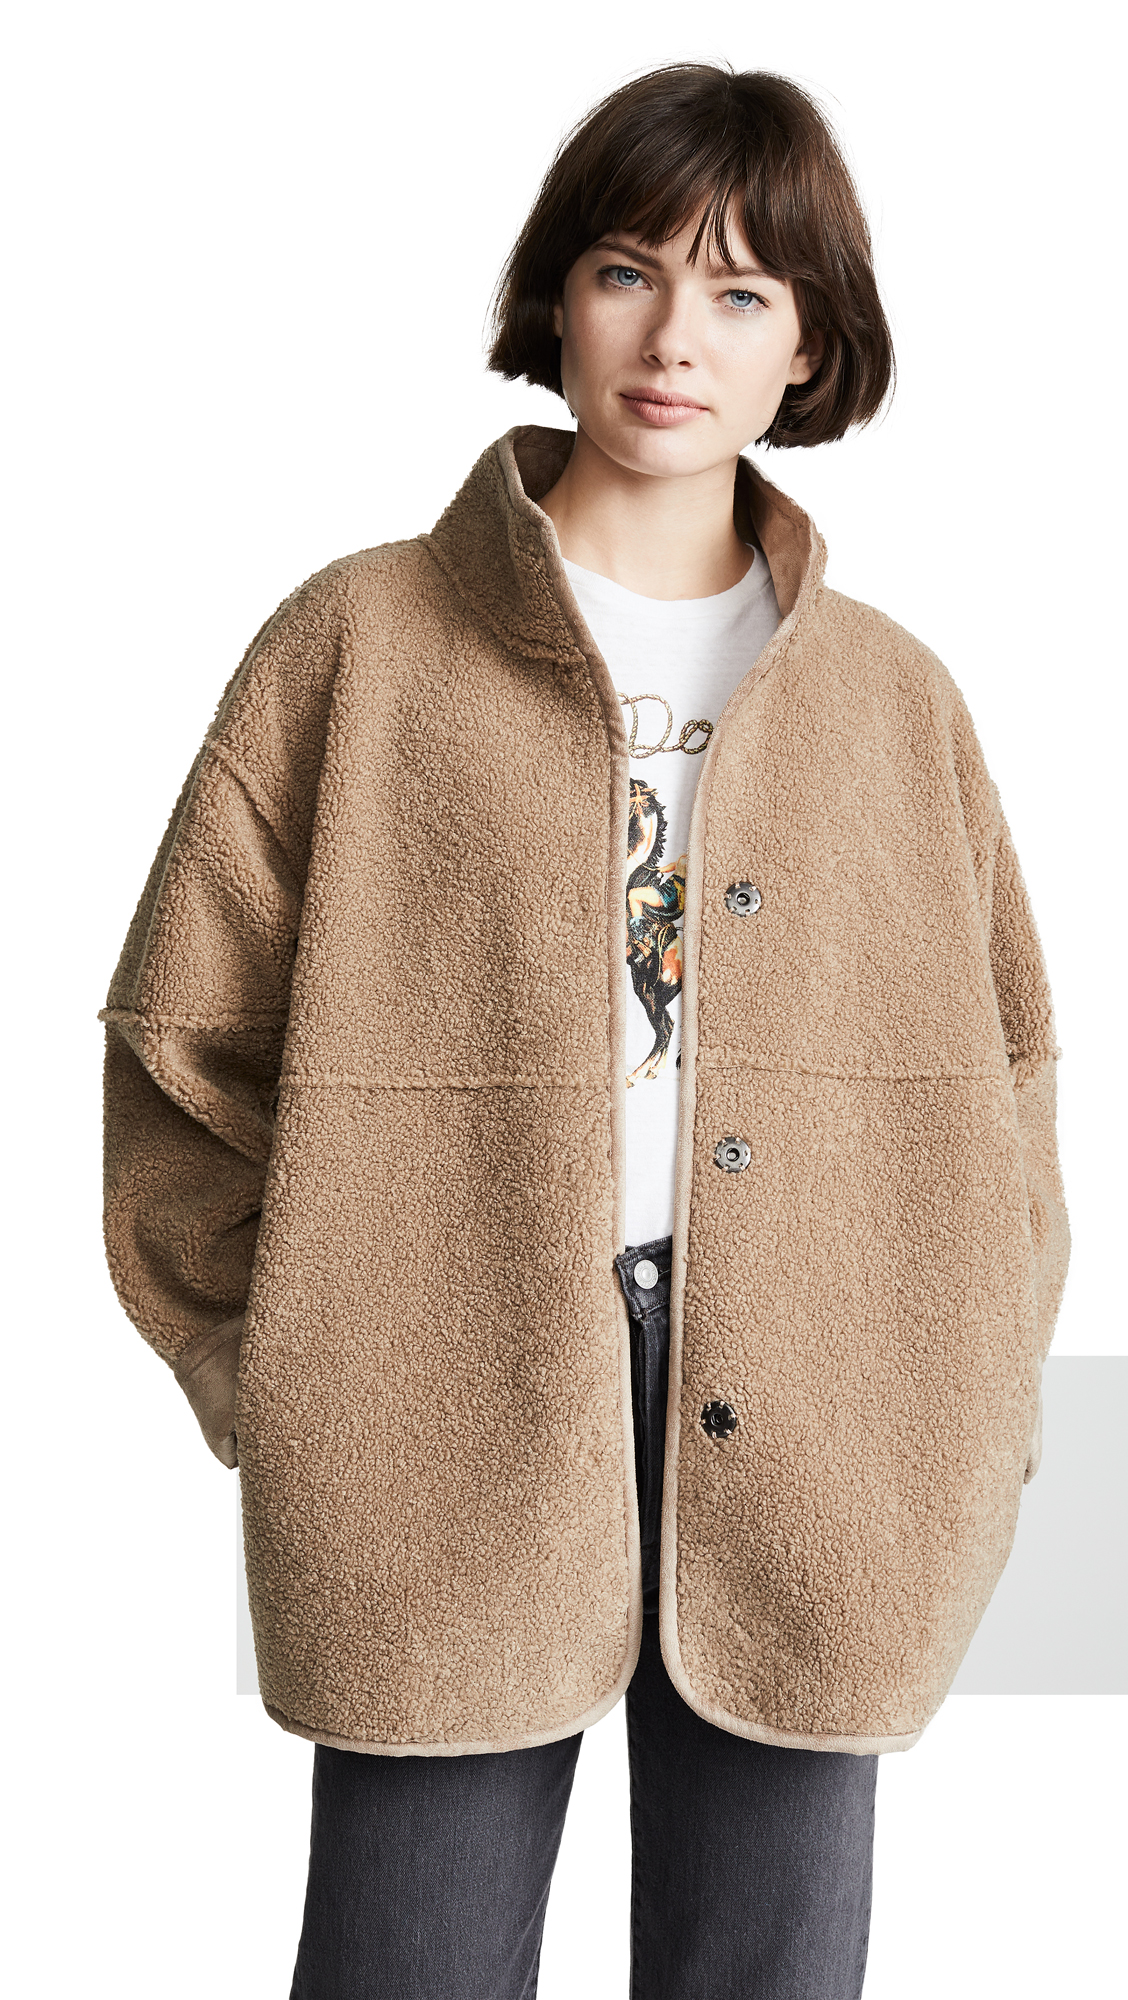 Albany Sherpa Coat in Tan